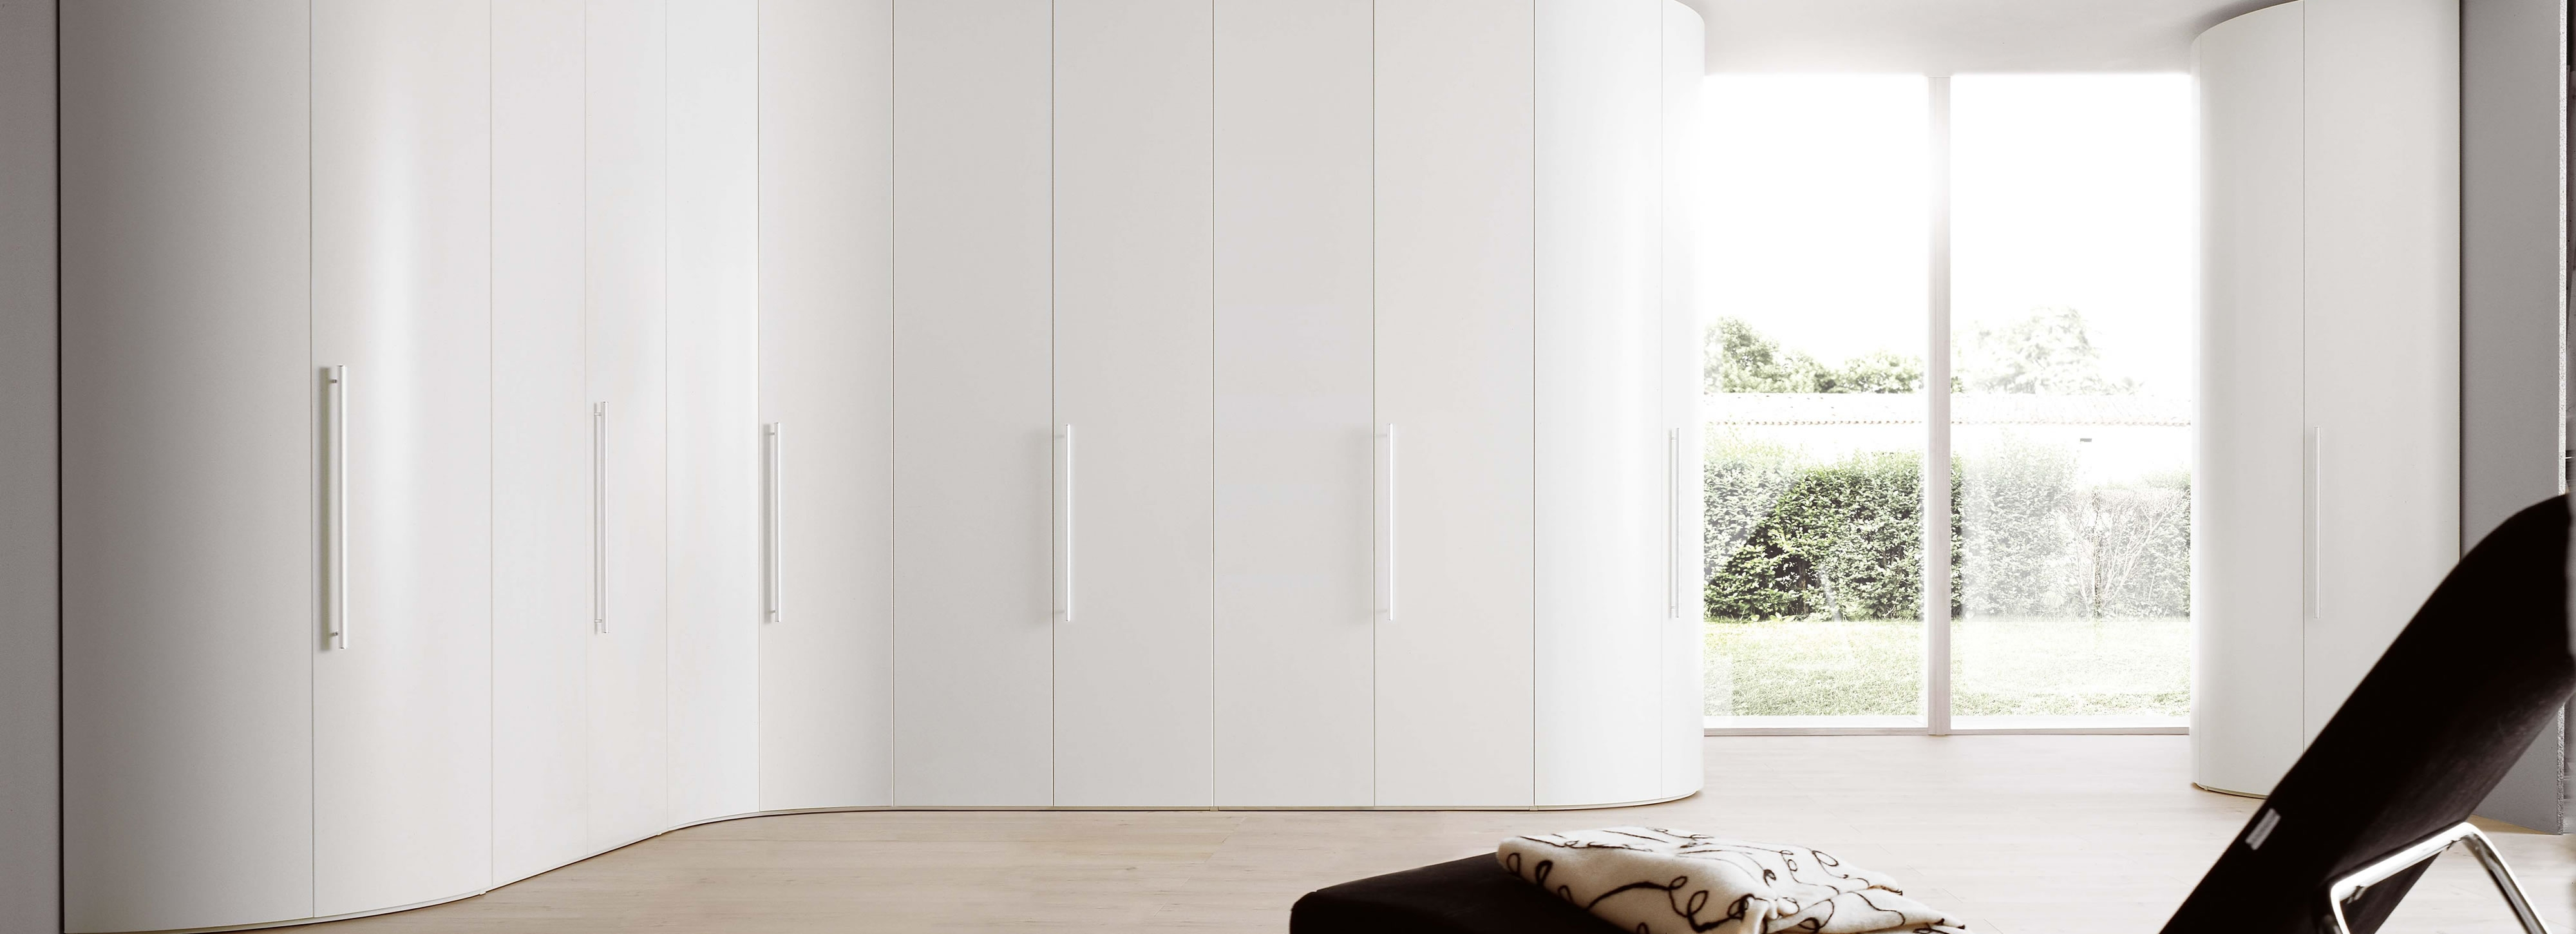 Curved Bedroom Wardrobes Design Install Surrey Raycross Pertaining To Curved Wardrobe Doors (View 13 of 15)